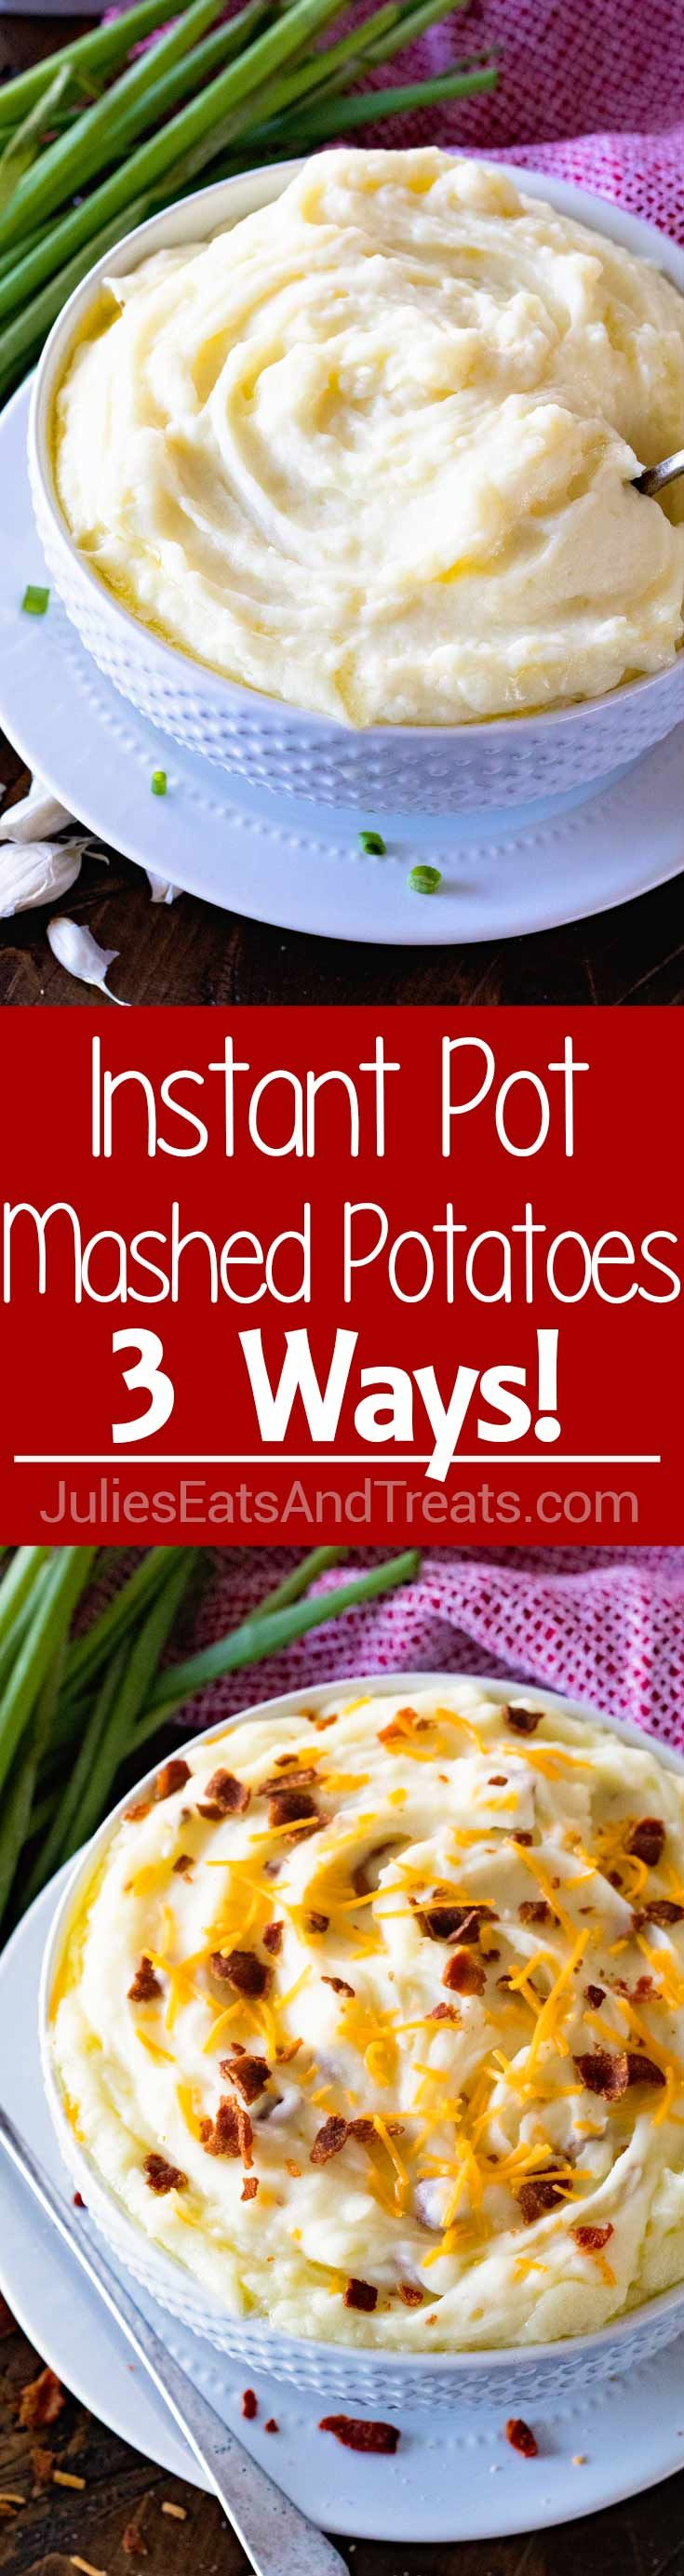 {Instant Pot} Pressure Cooker Mashed Potatoes ~ Three Different Ways! We Have Traditional Mashed Potatoes, Cheddar Bacon and Garlic Mashed All Made In Your Pressure Cooker! ~ https://www.julieseatsandtreats.com